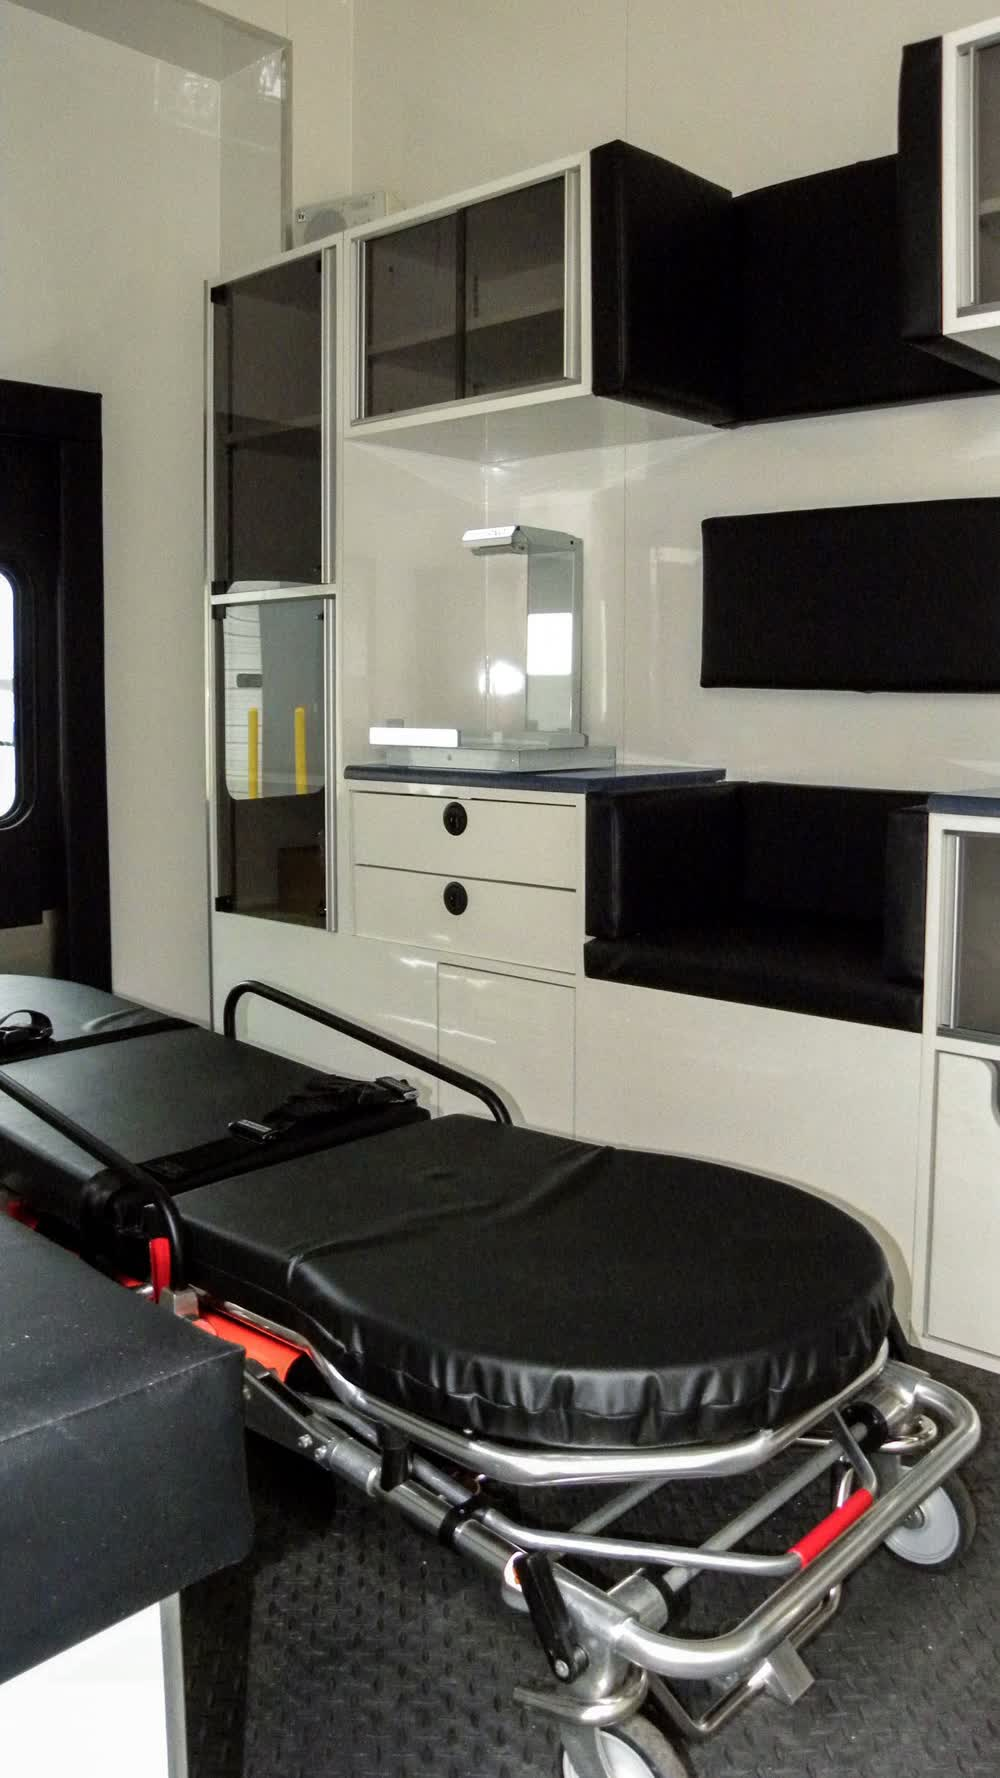 miami valley hospital bed mobile medical vehicles new used